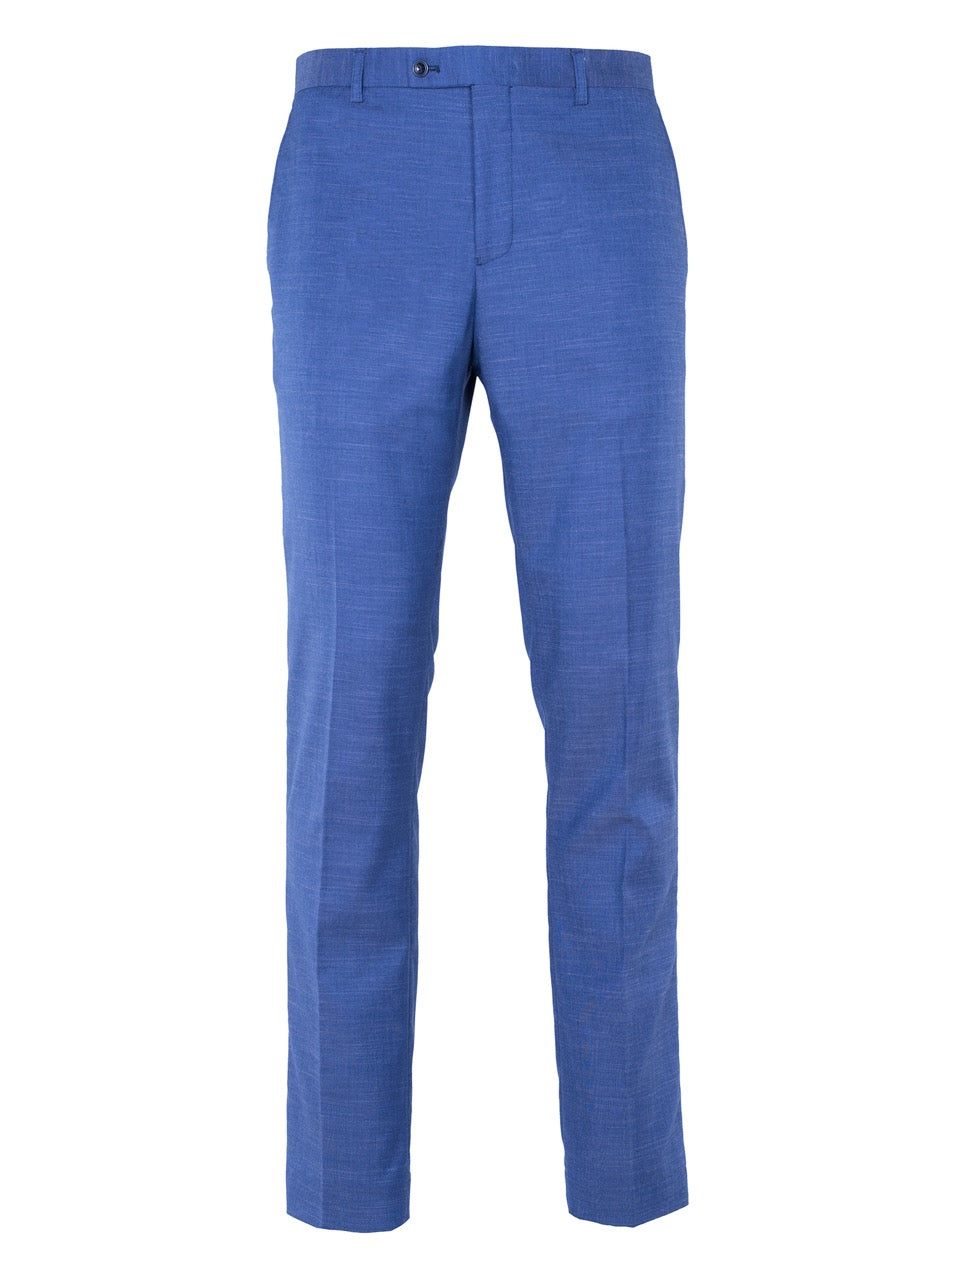 Sloane Tuxedo Pants with Reverse Leg Stripe - 2 Tone Chambray